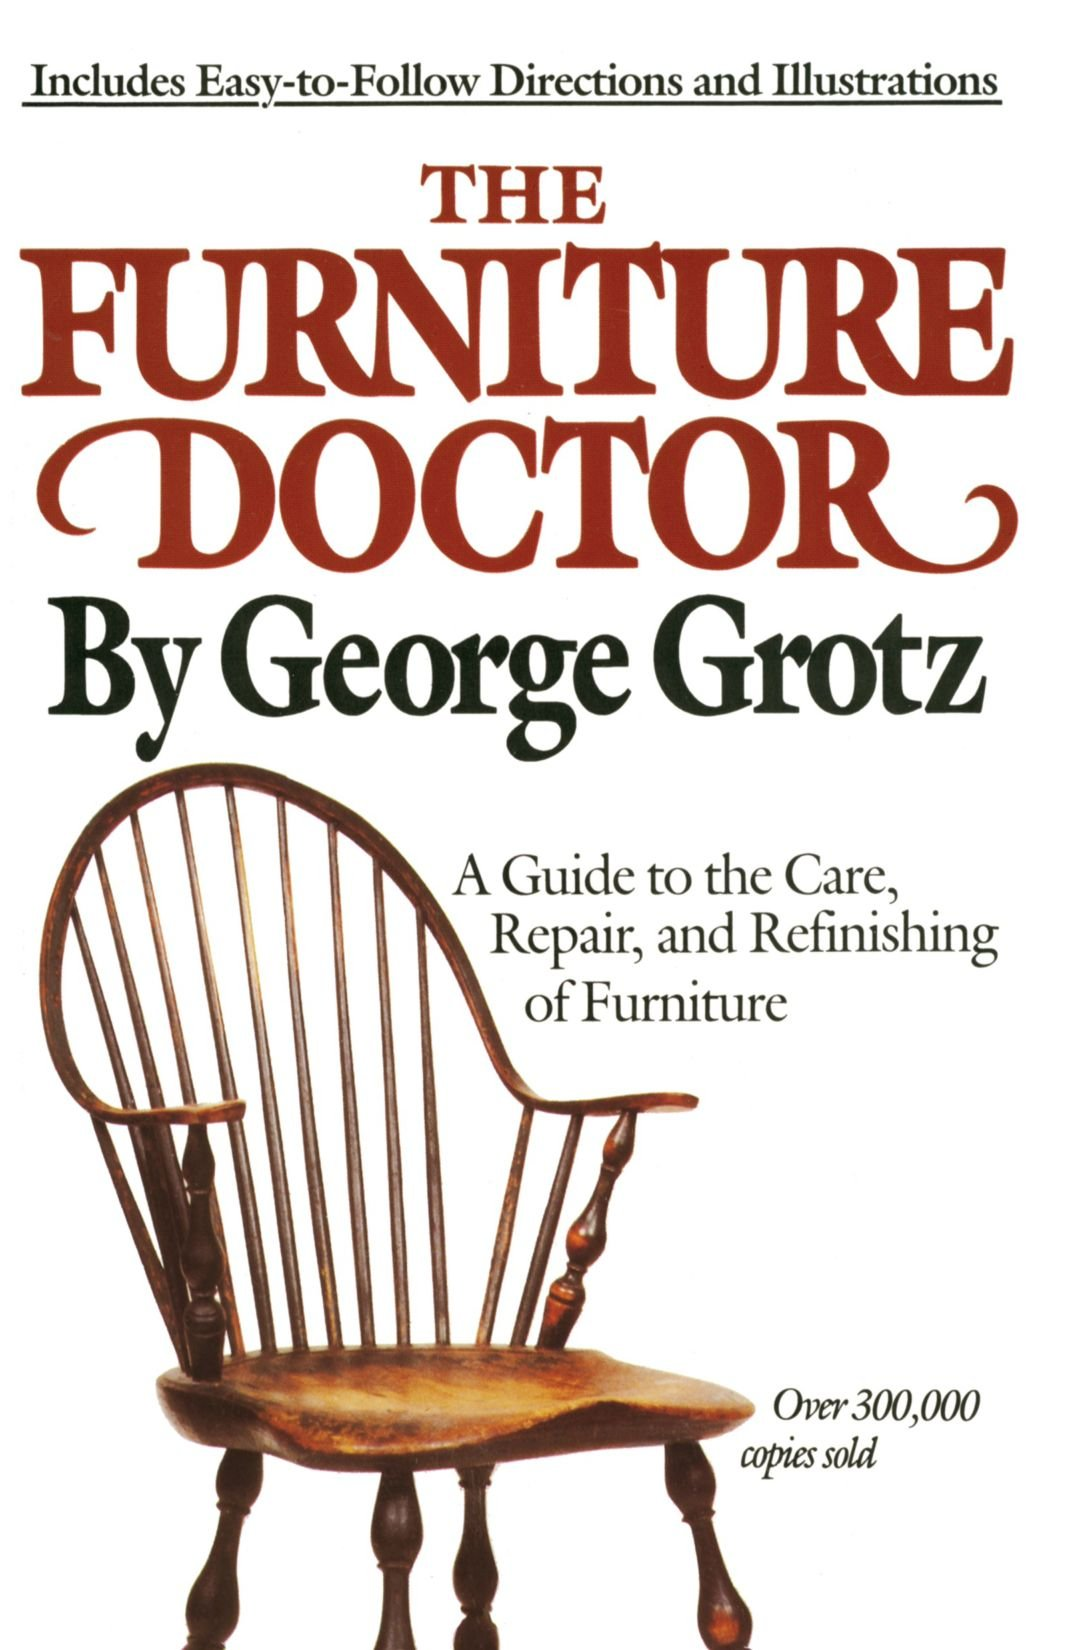 The Furniture Doctor: A Guide to the Care, Repair, and Refinishing of  Furniture: George Grotz: 9780385266703: Amazon.com: Books